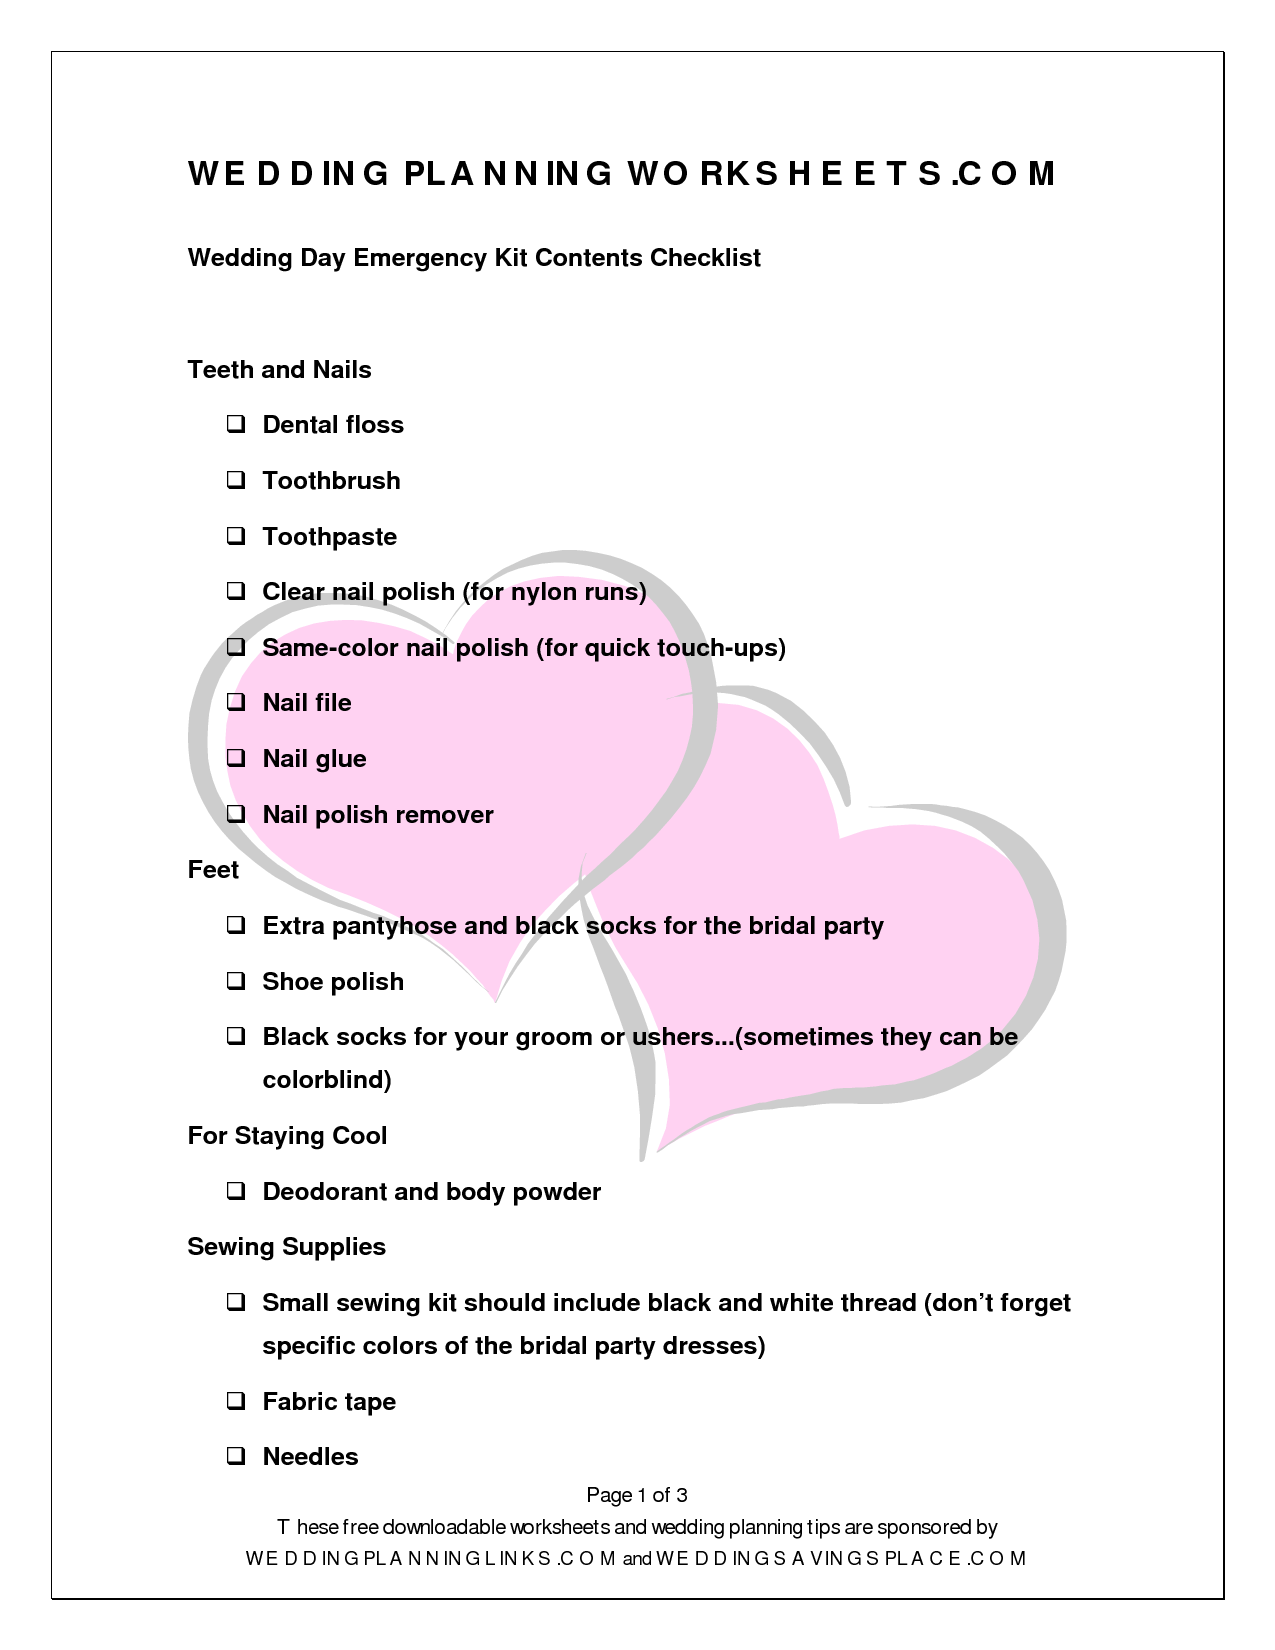 Worksheet Wedding Worksheets 8 best images of wedding planning worksheets free printable worksheets